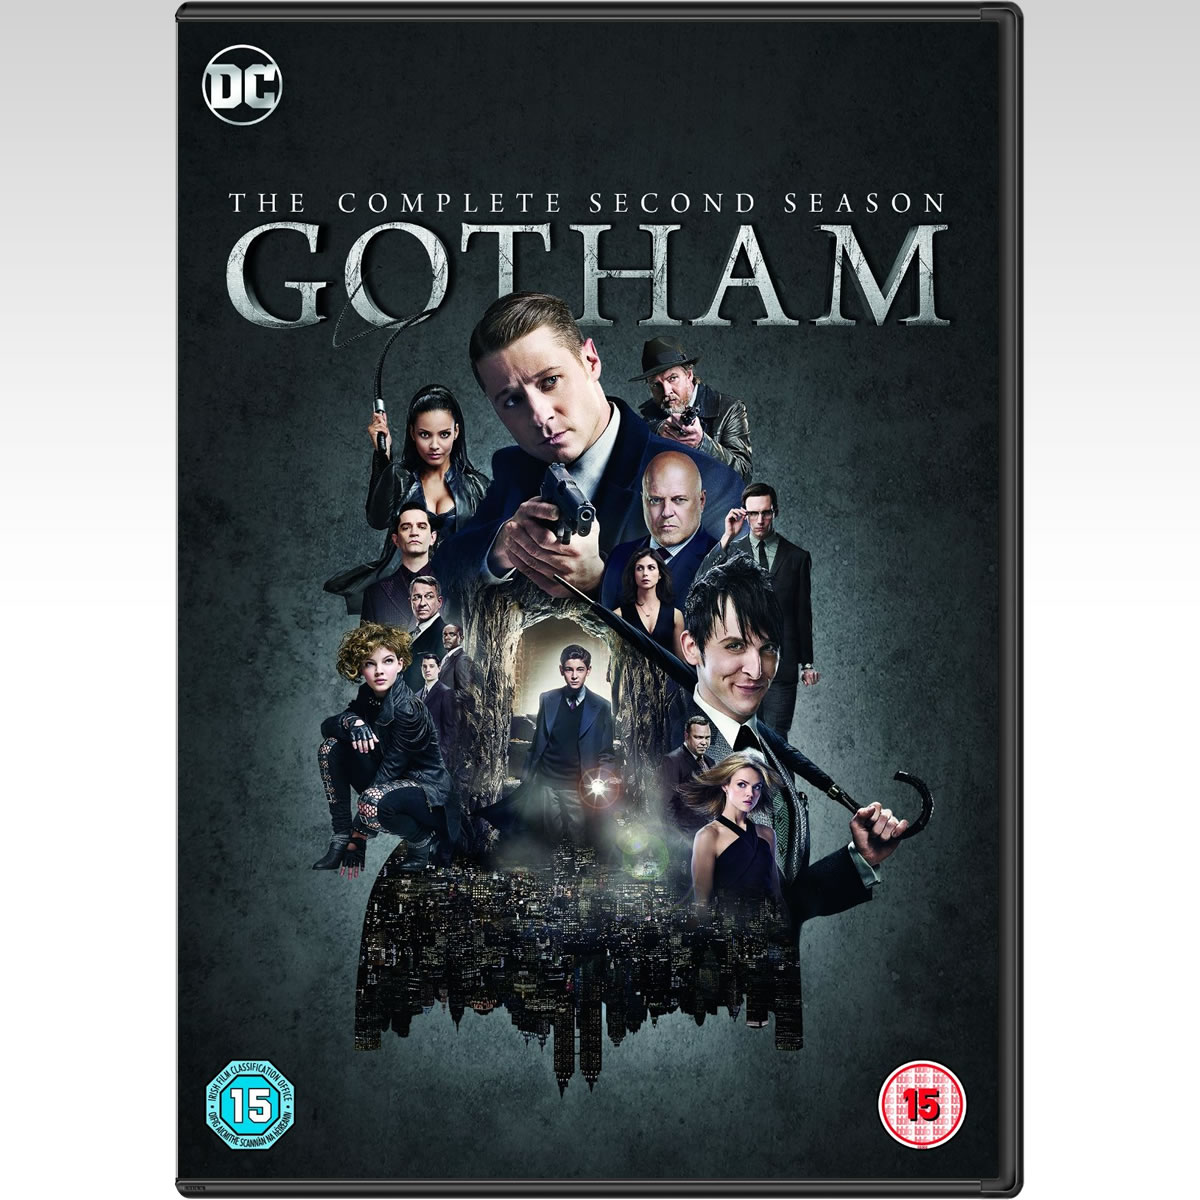 GOTHAM: THE COMPLETE 2nd SEASON (6 DVDs)